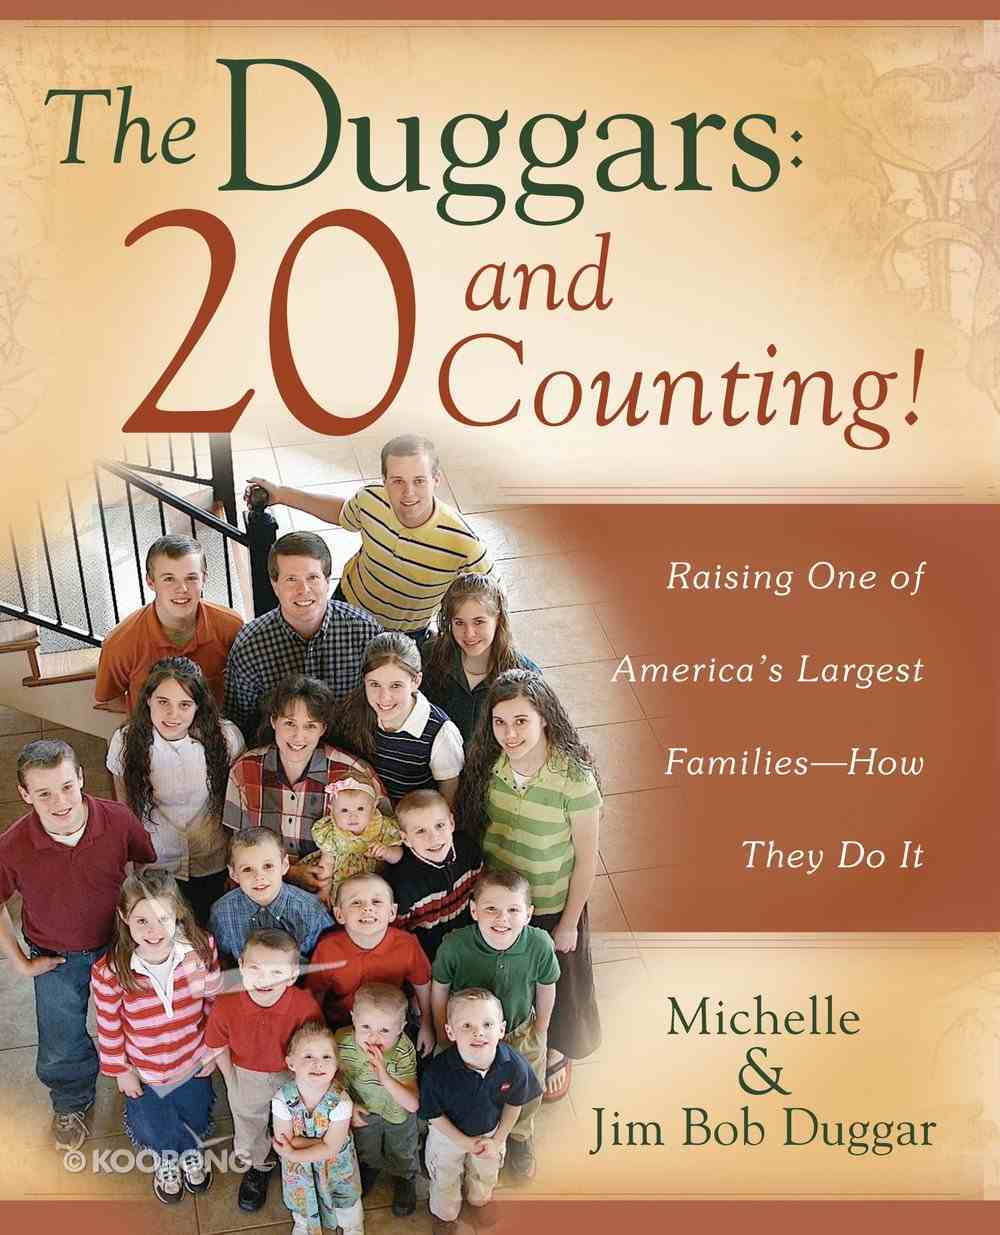 Duggars: The 20 and Counting! eBook